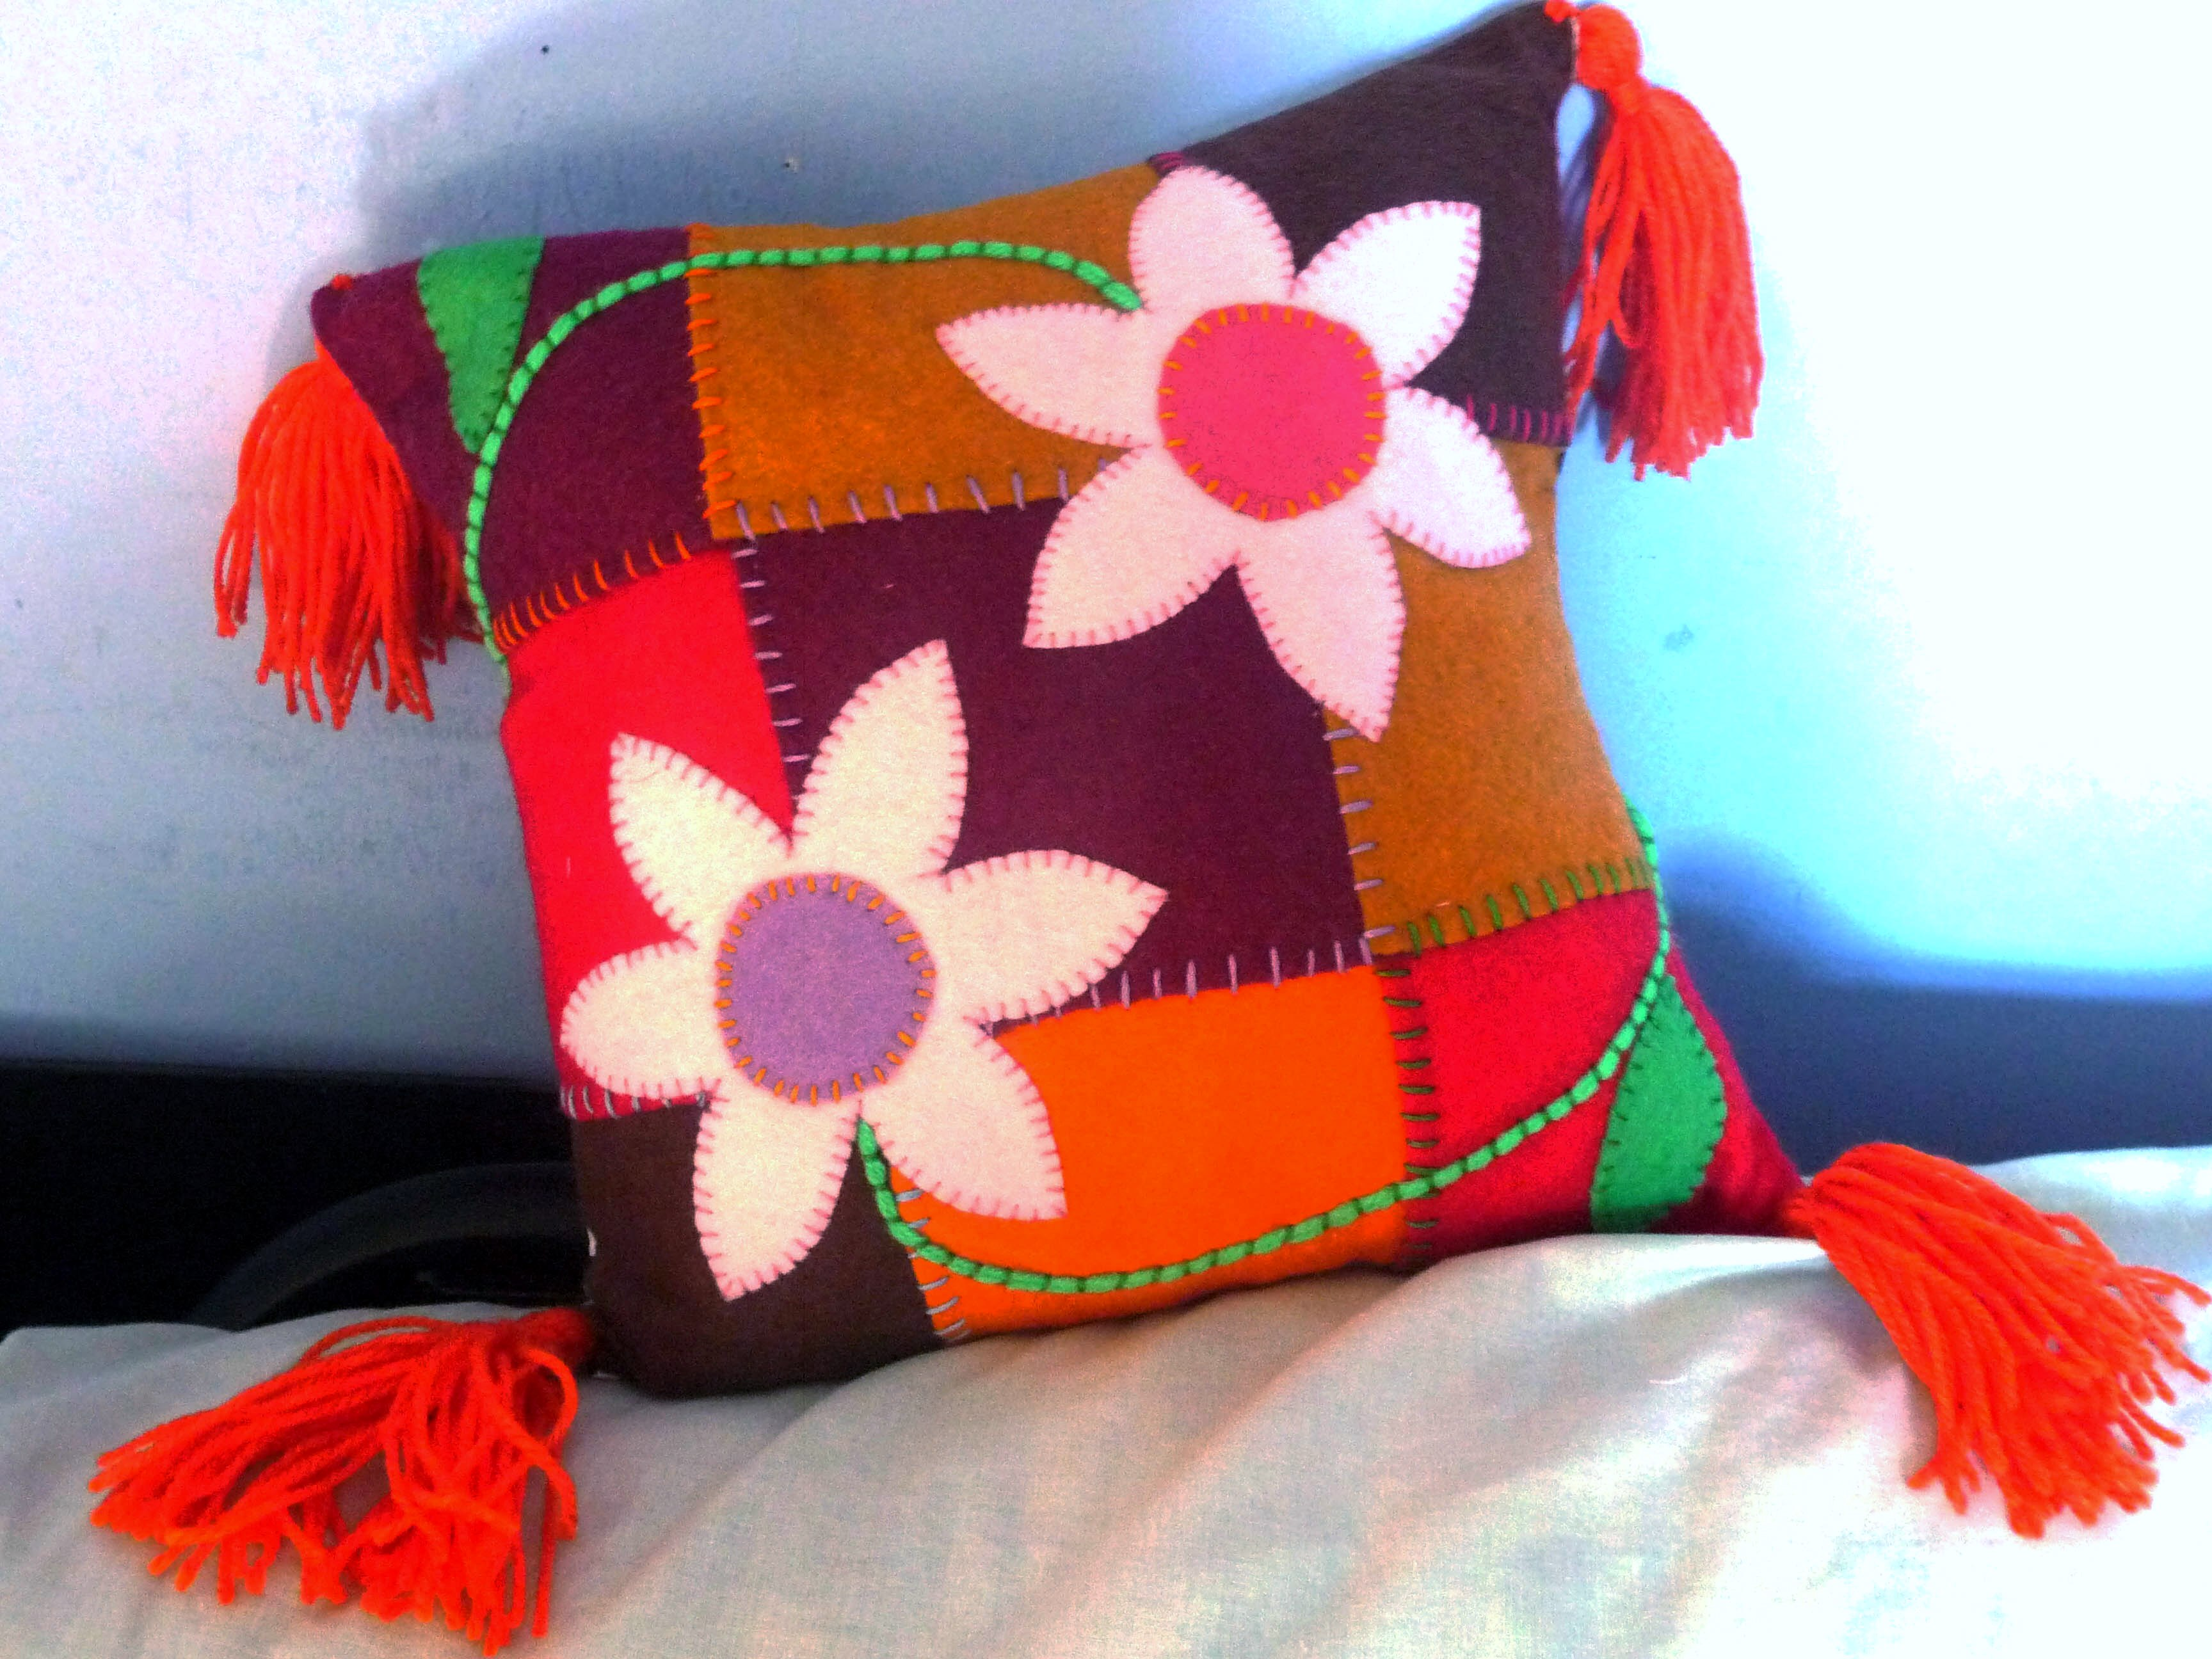 we are going to make applique felt cushions like this one